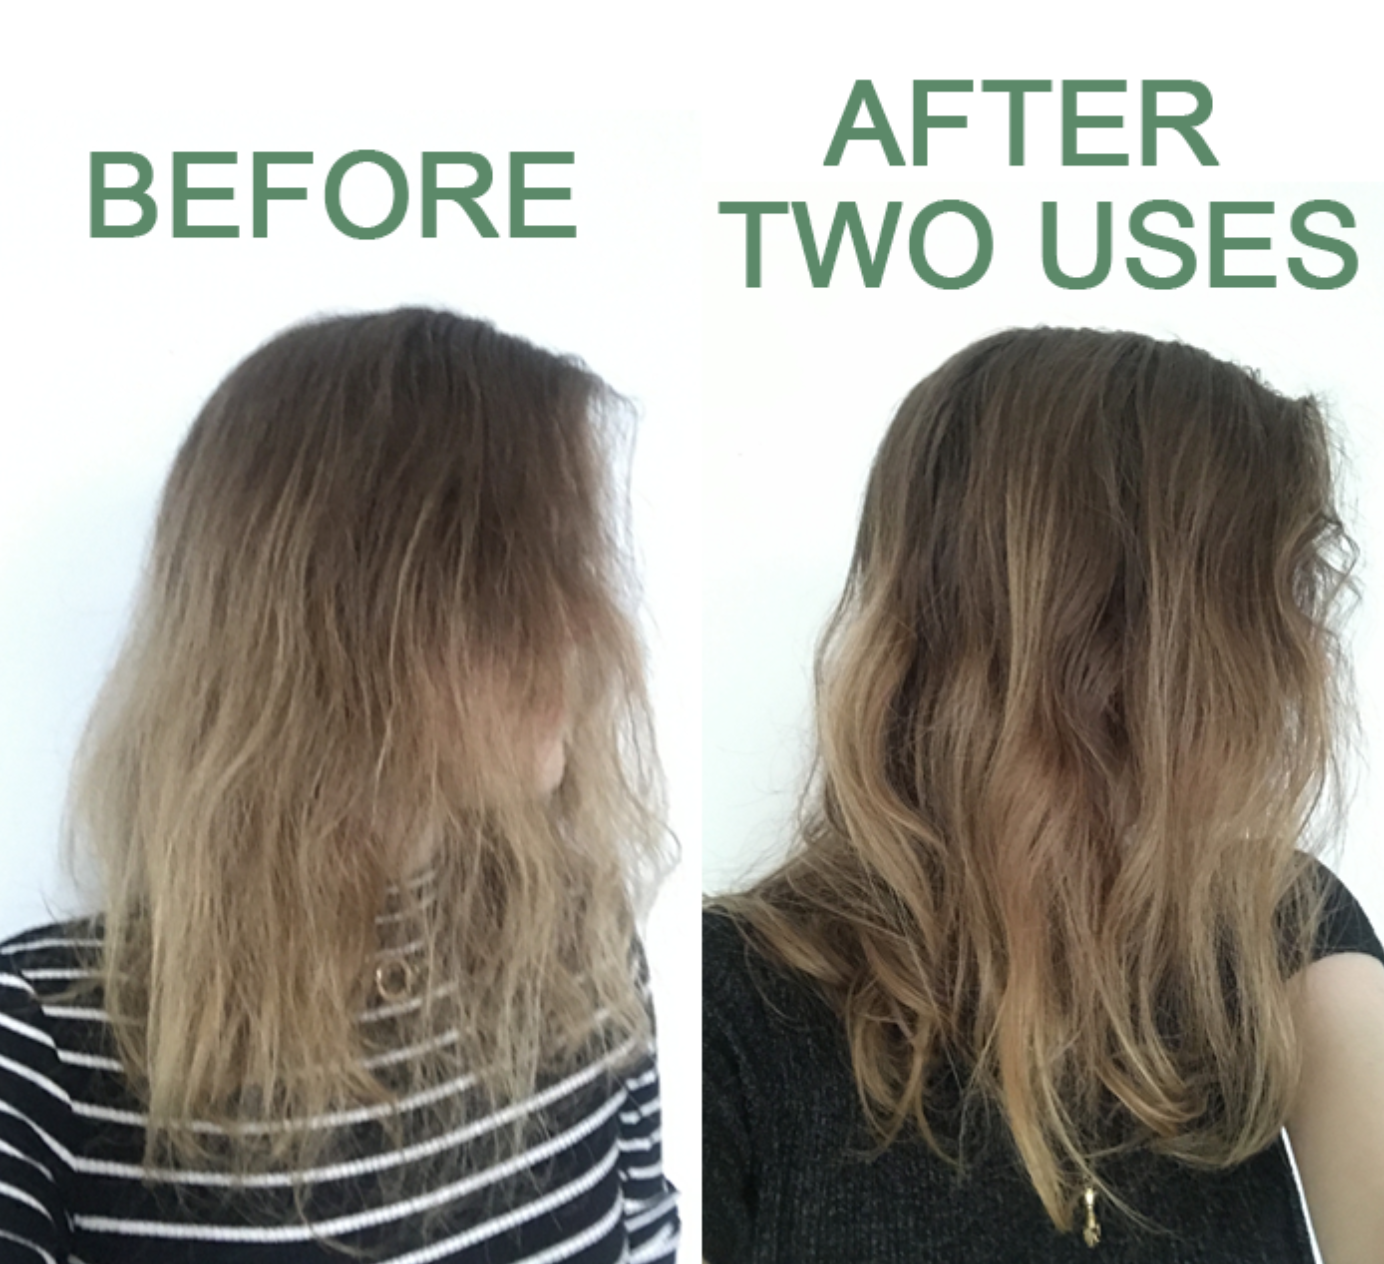 Bek, a BuzzFeed editor, showing her hair looking dry and frizzy at first, then looking smoother after using the product twice